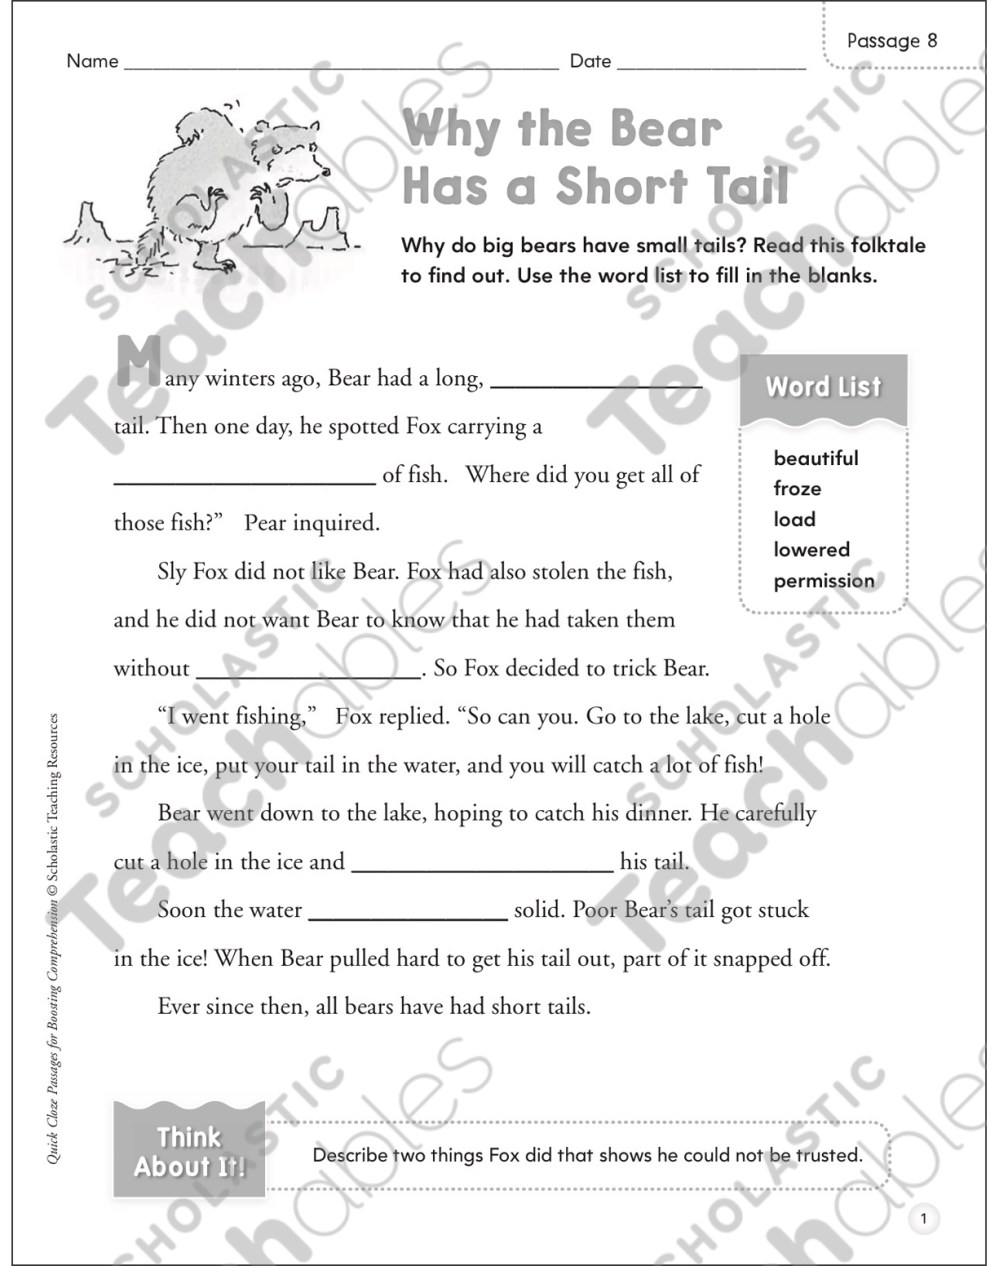 medium resolution of Why the Bear Has a Short Tail: Quick Cloze Passage   Printable Skills  Sheets